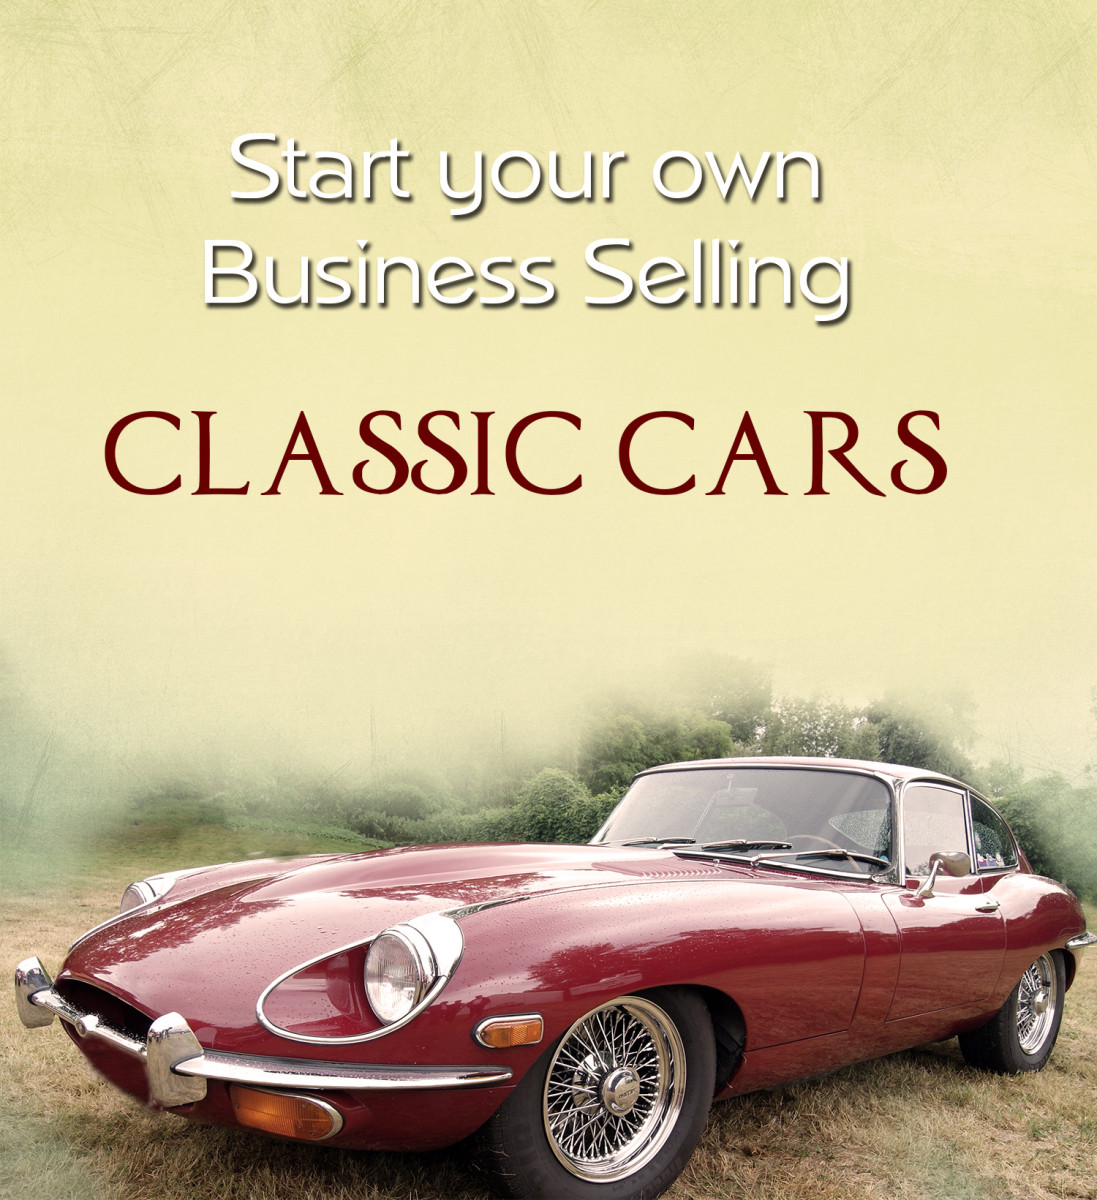 Start Your Own Business Selling Classic Cars